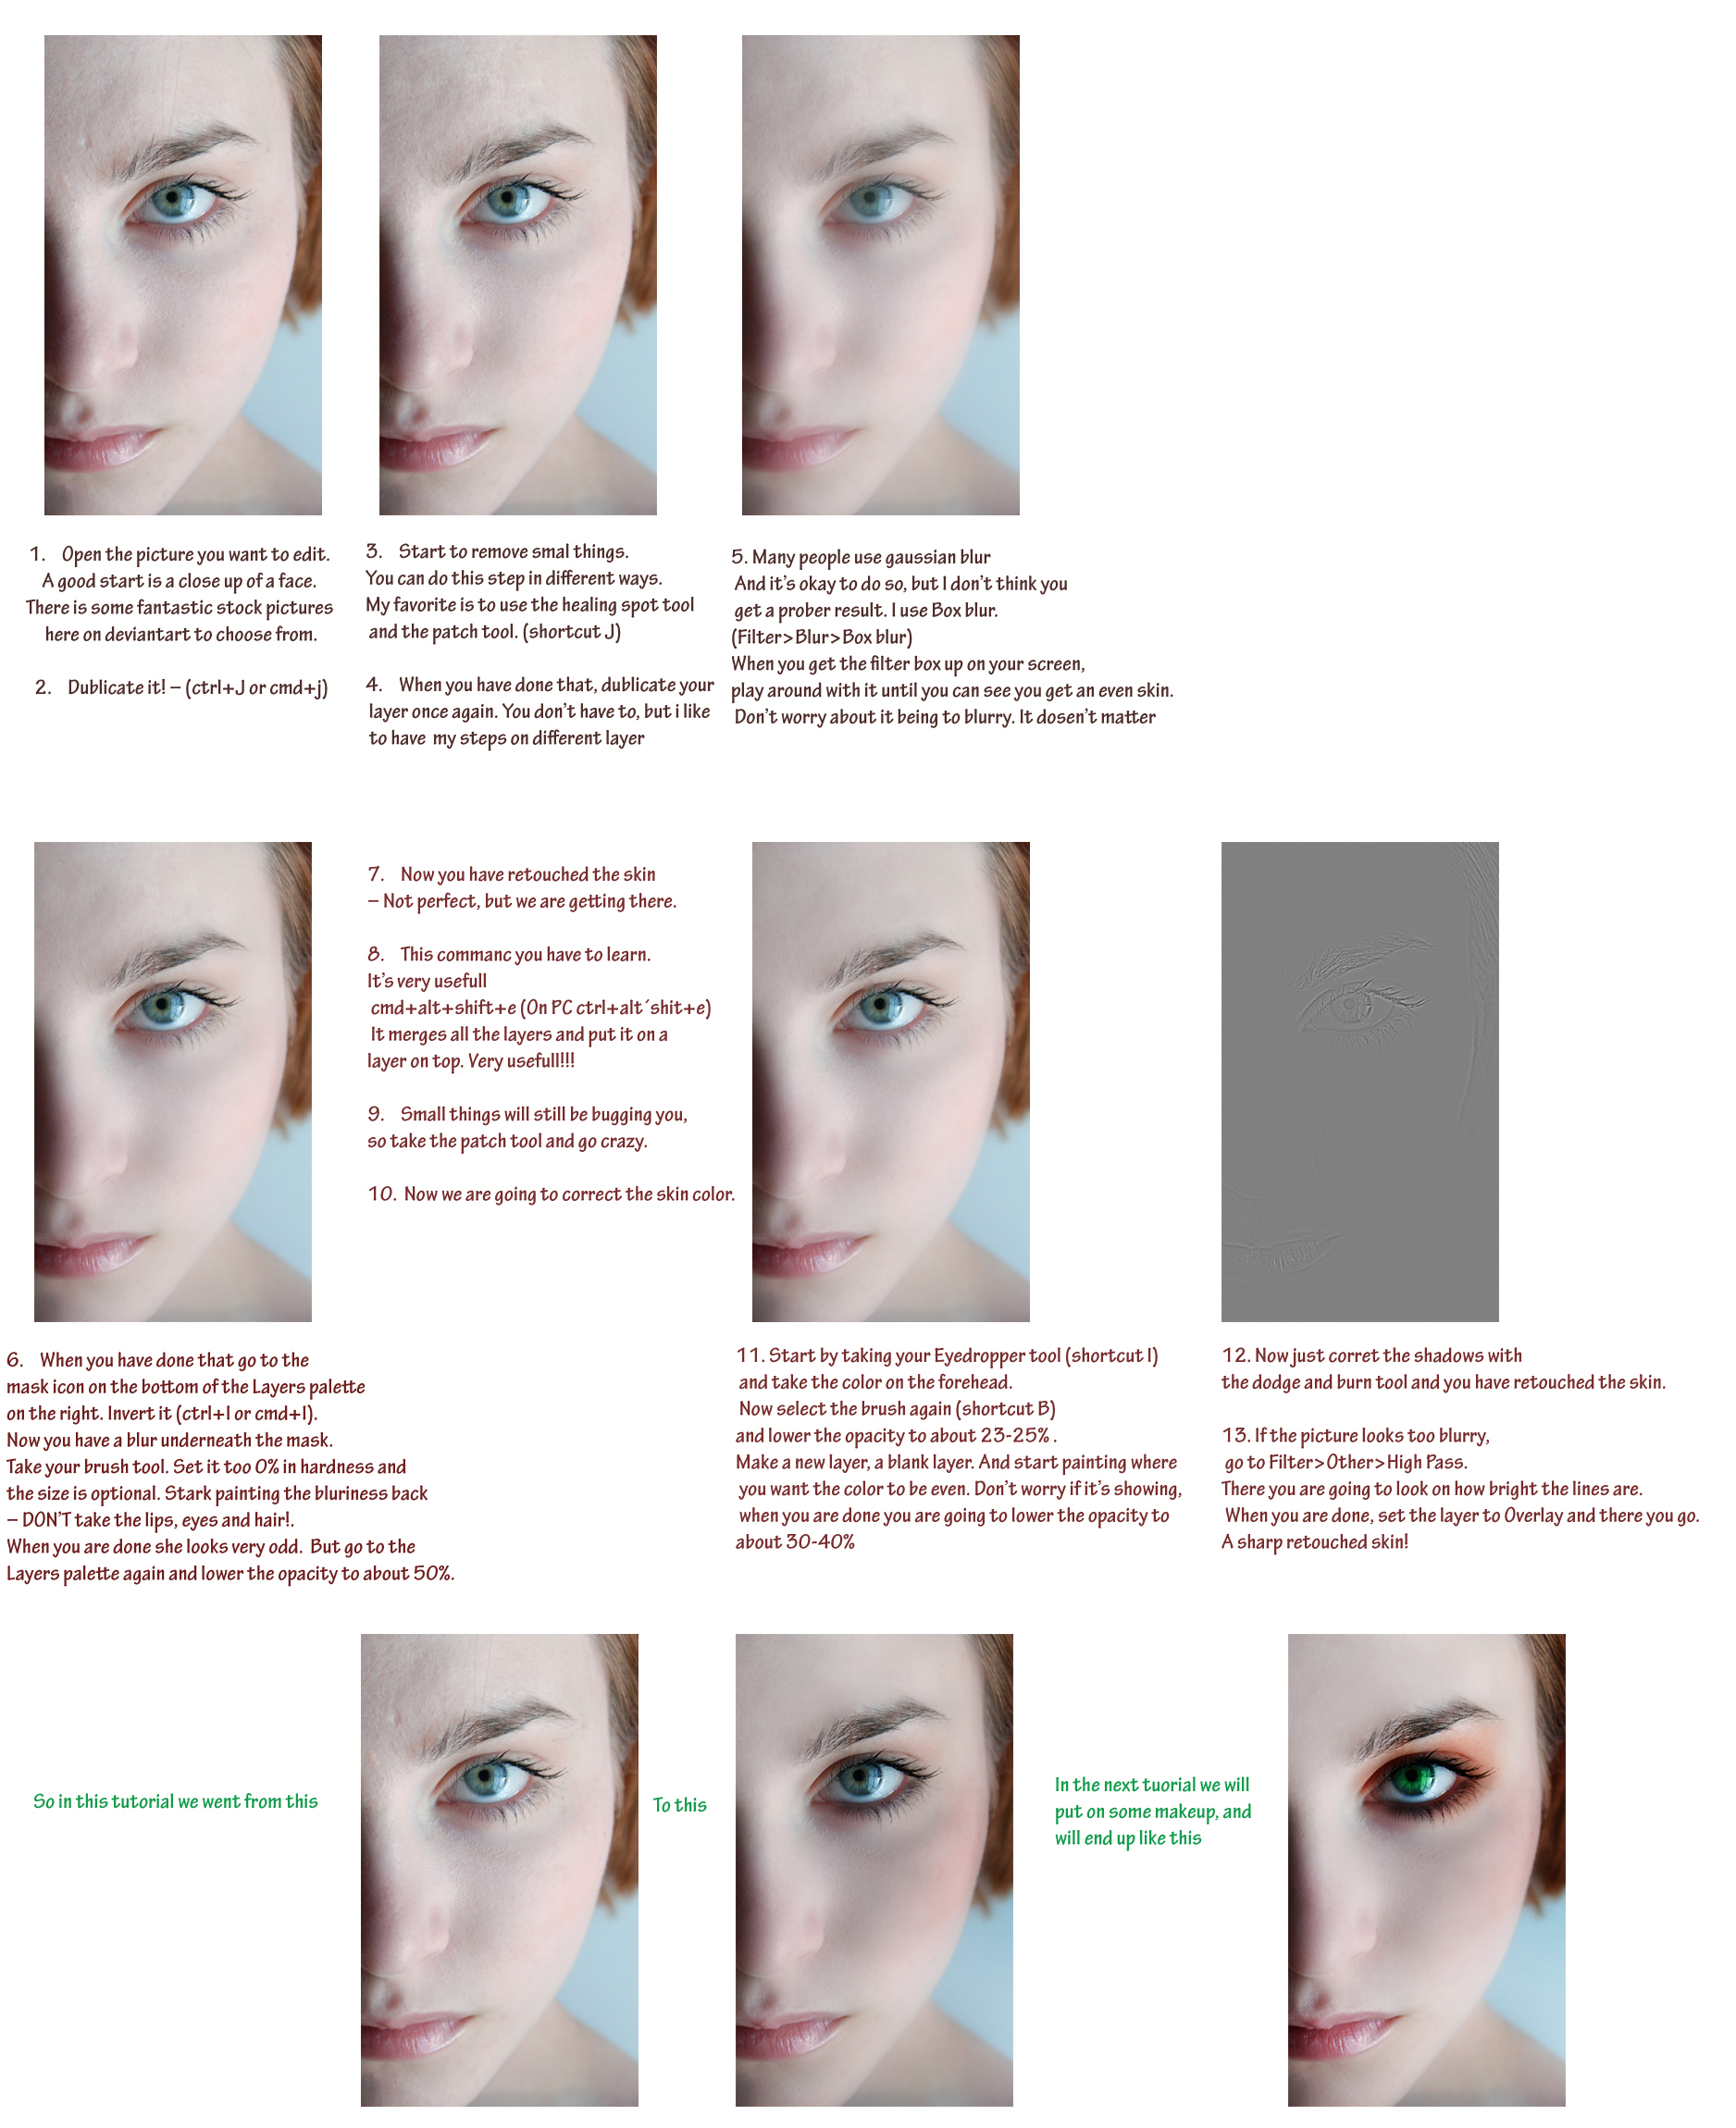 Pro skin retouch tutorial 1 by Initio